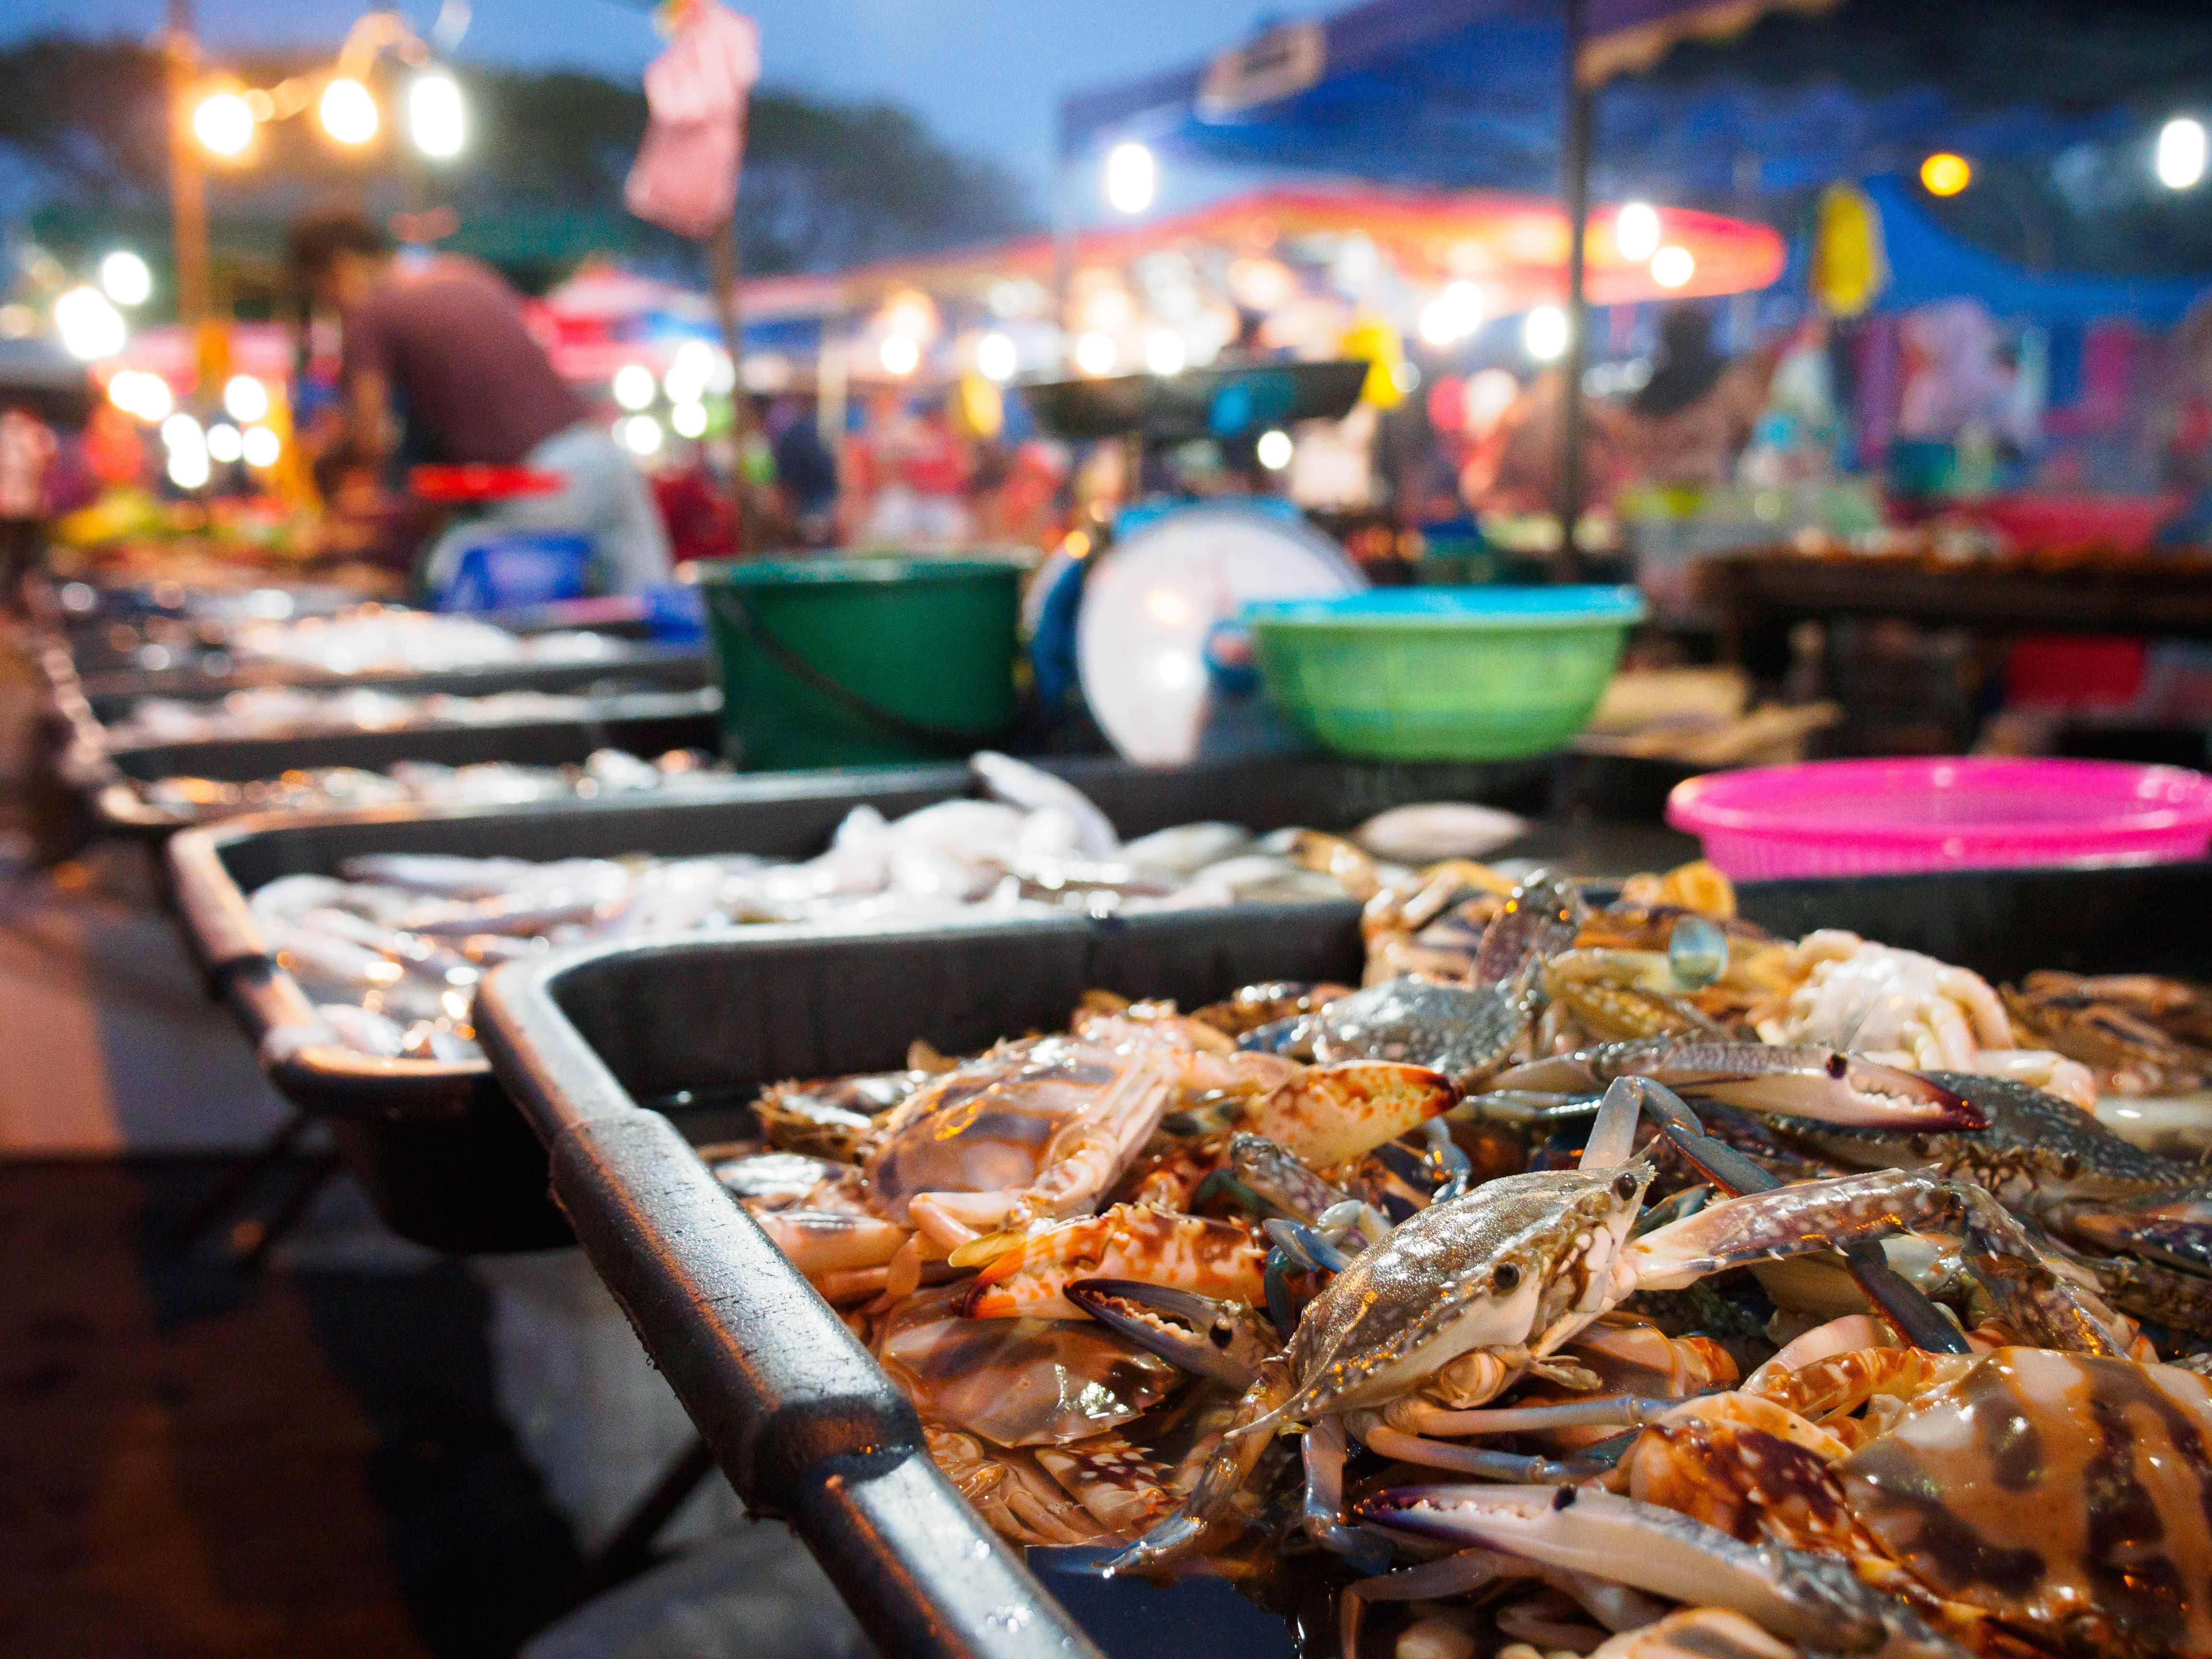 Food at the night market in Langkawi, Malaysia